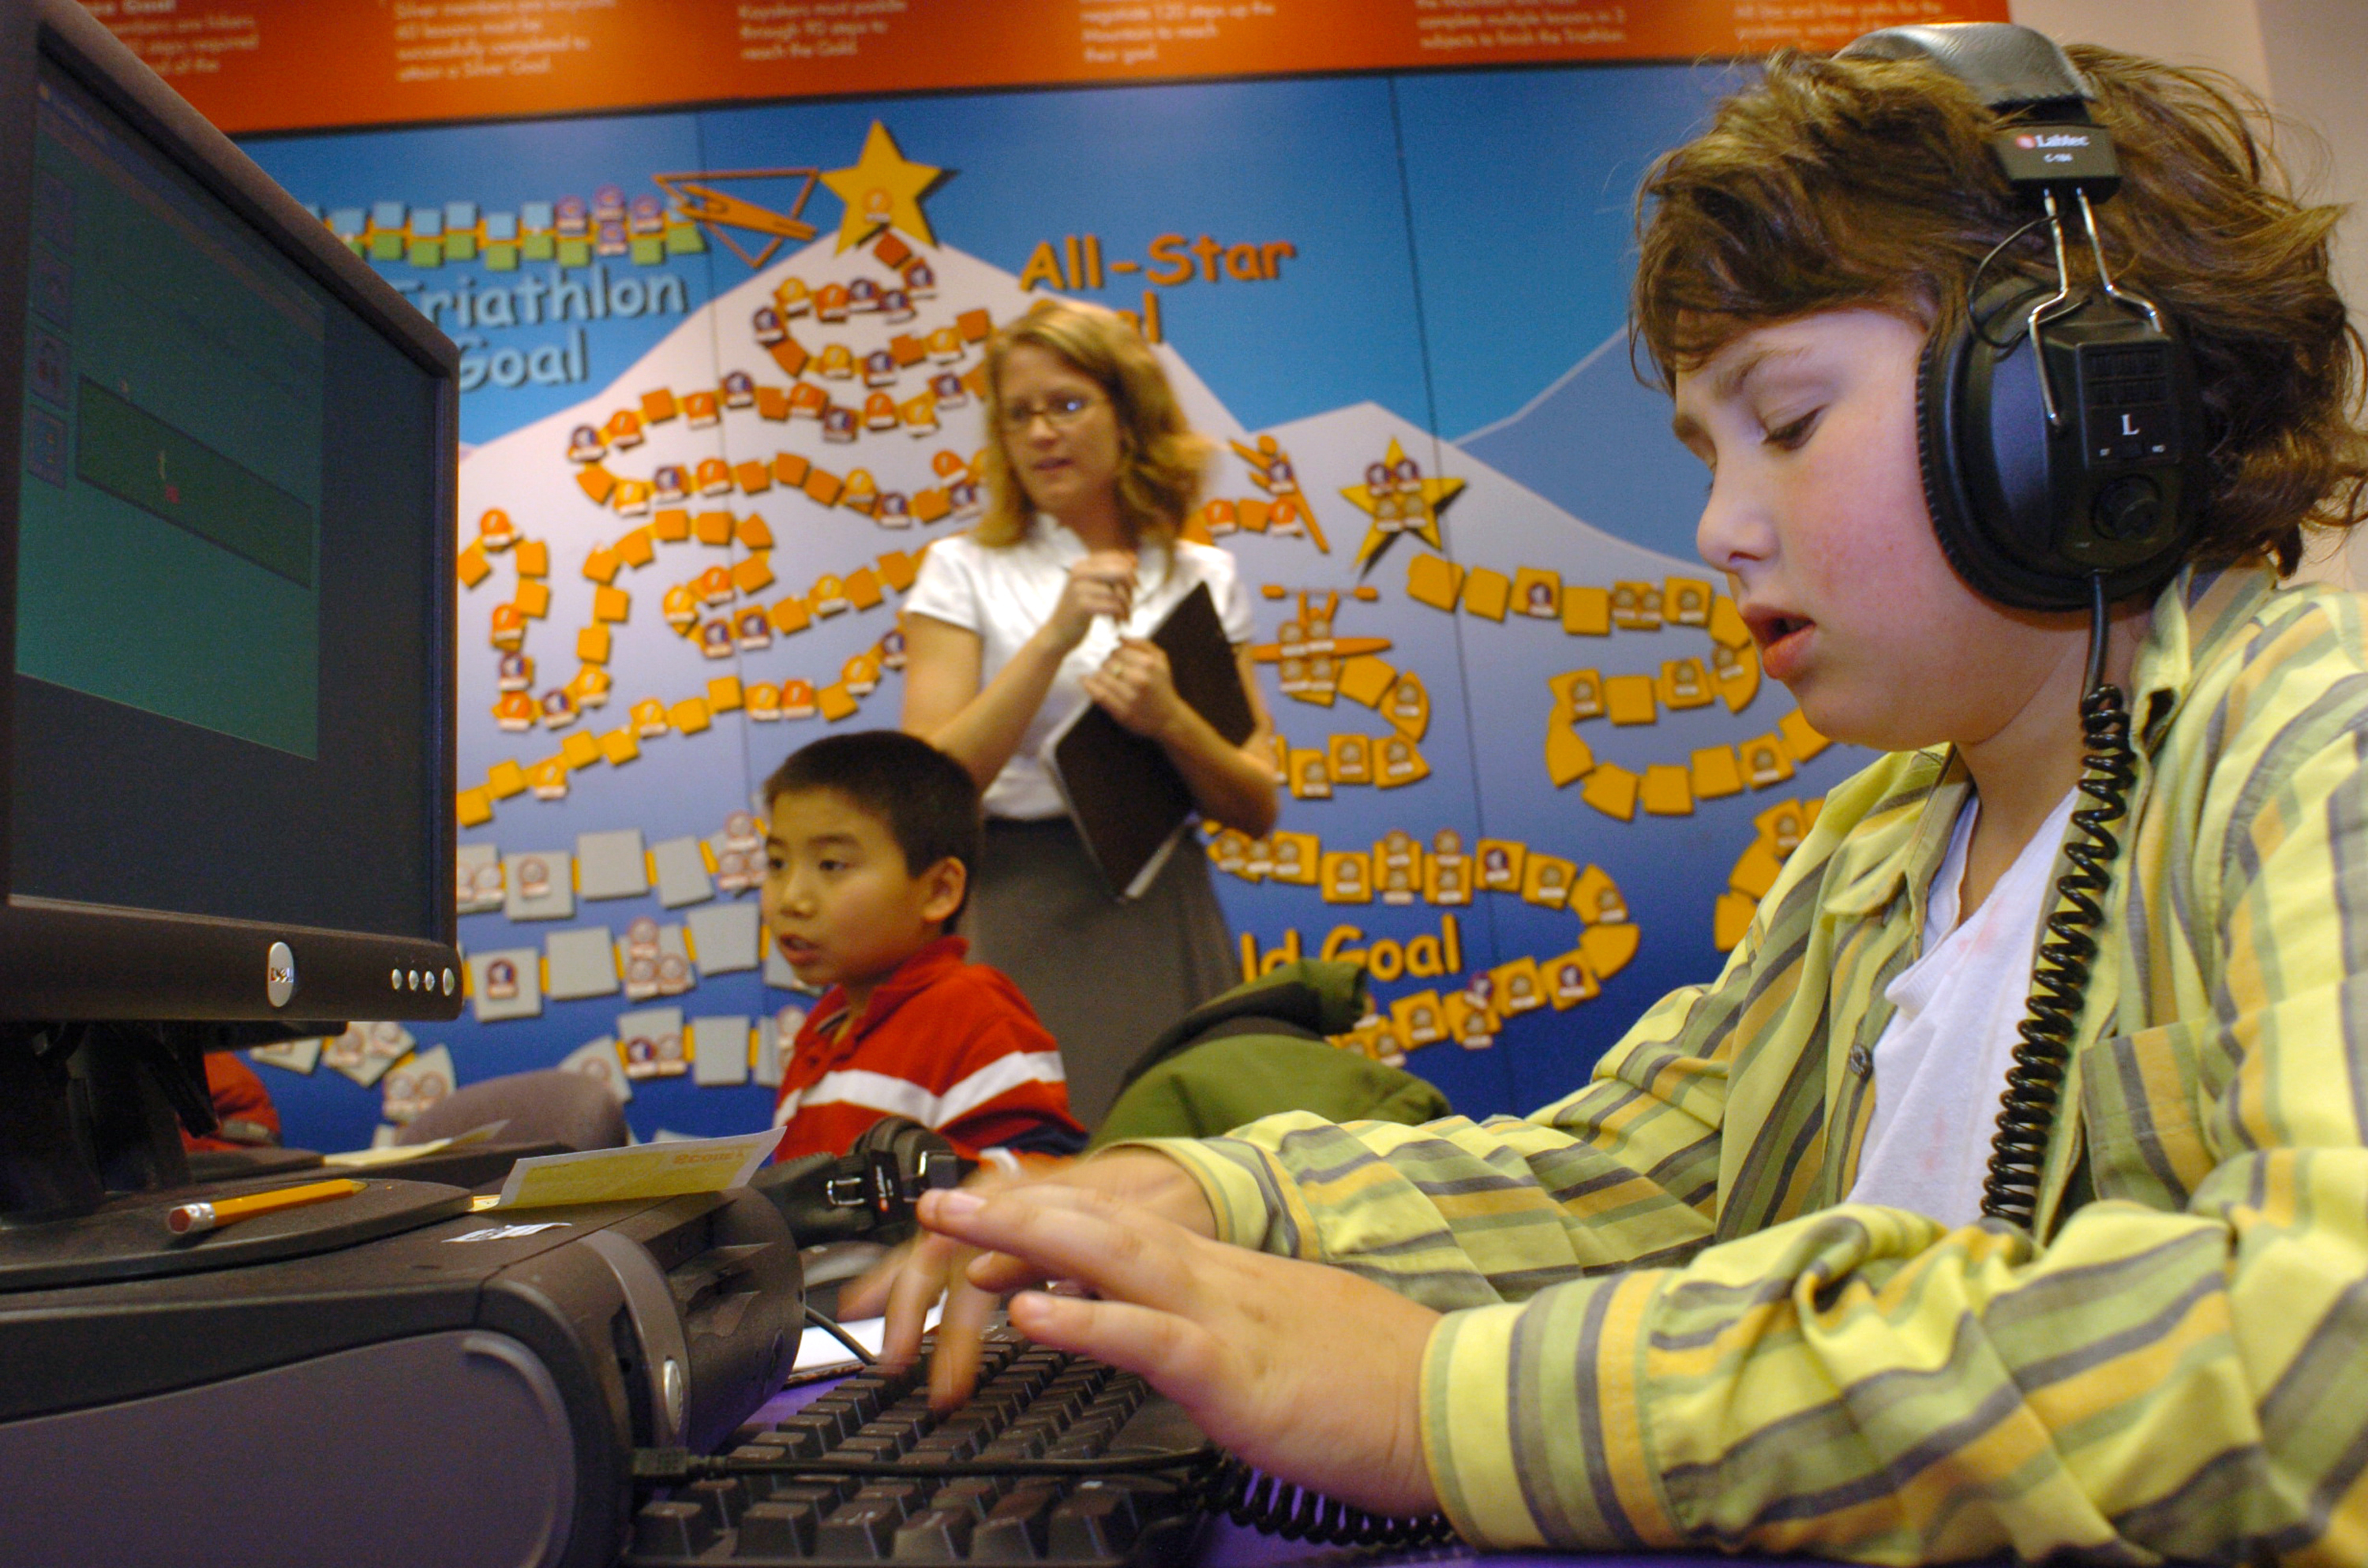 Fifth grader working at the computer during his after-school learning